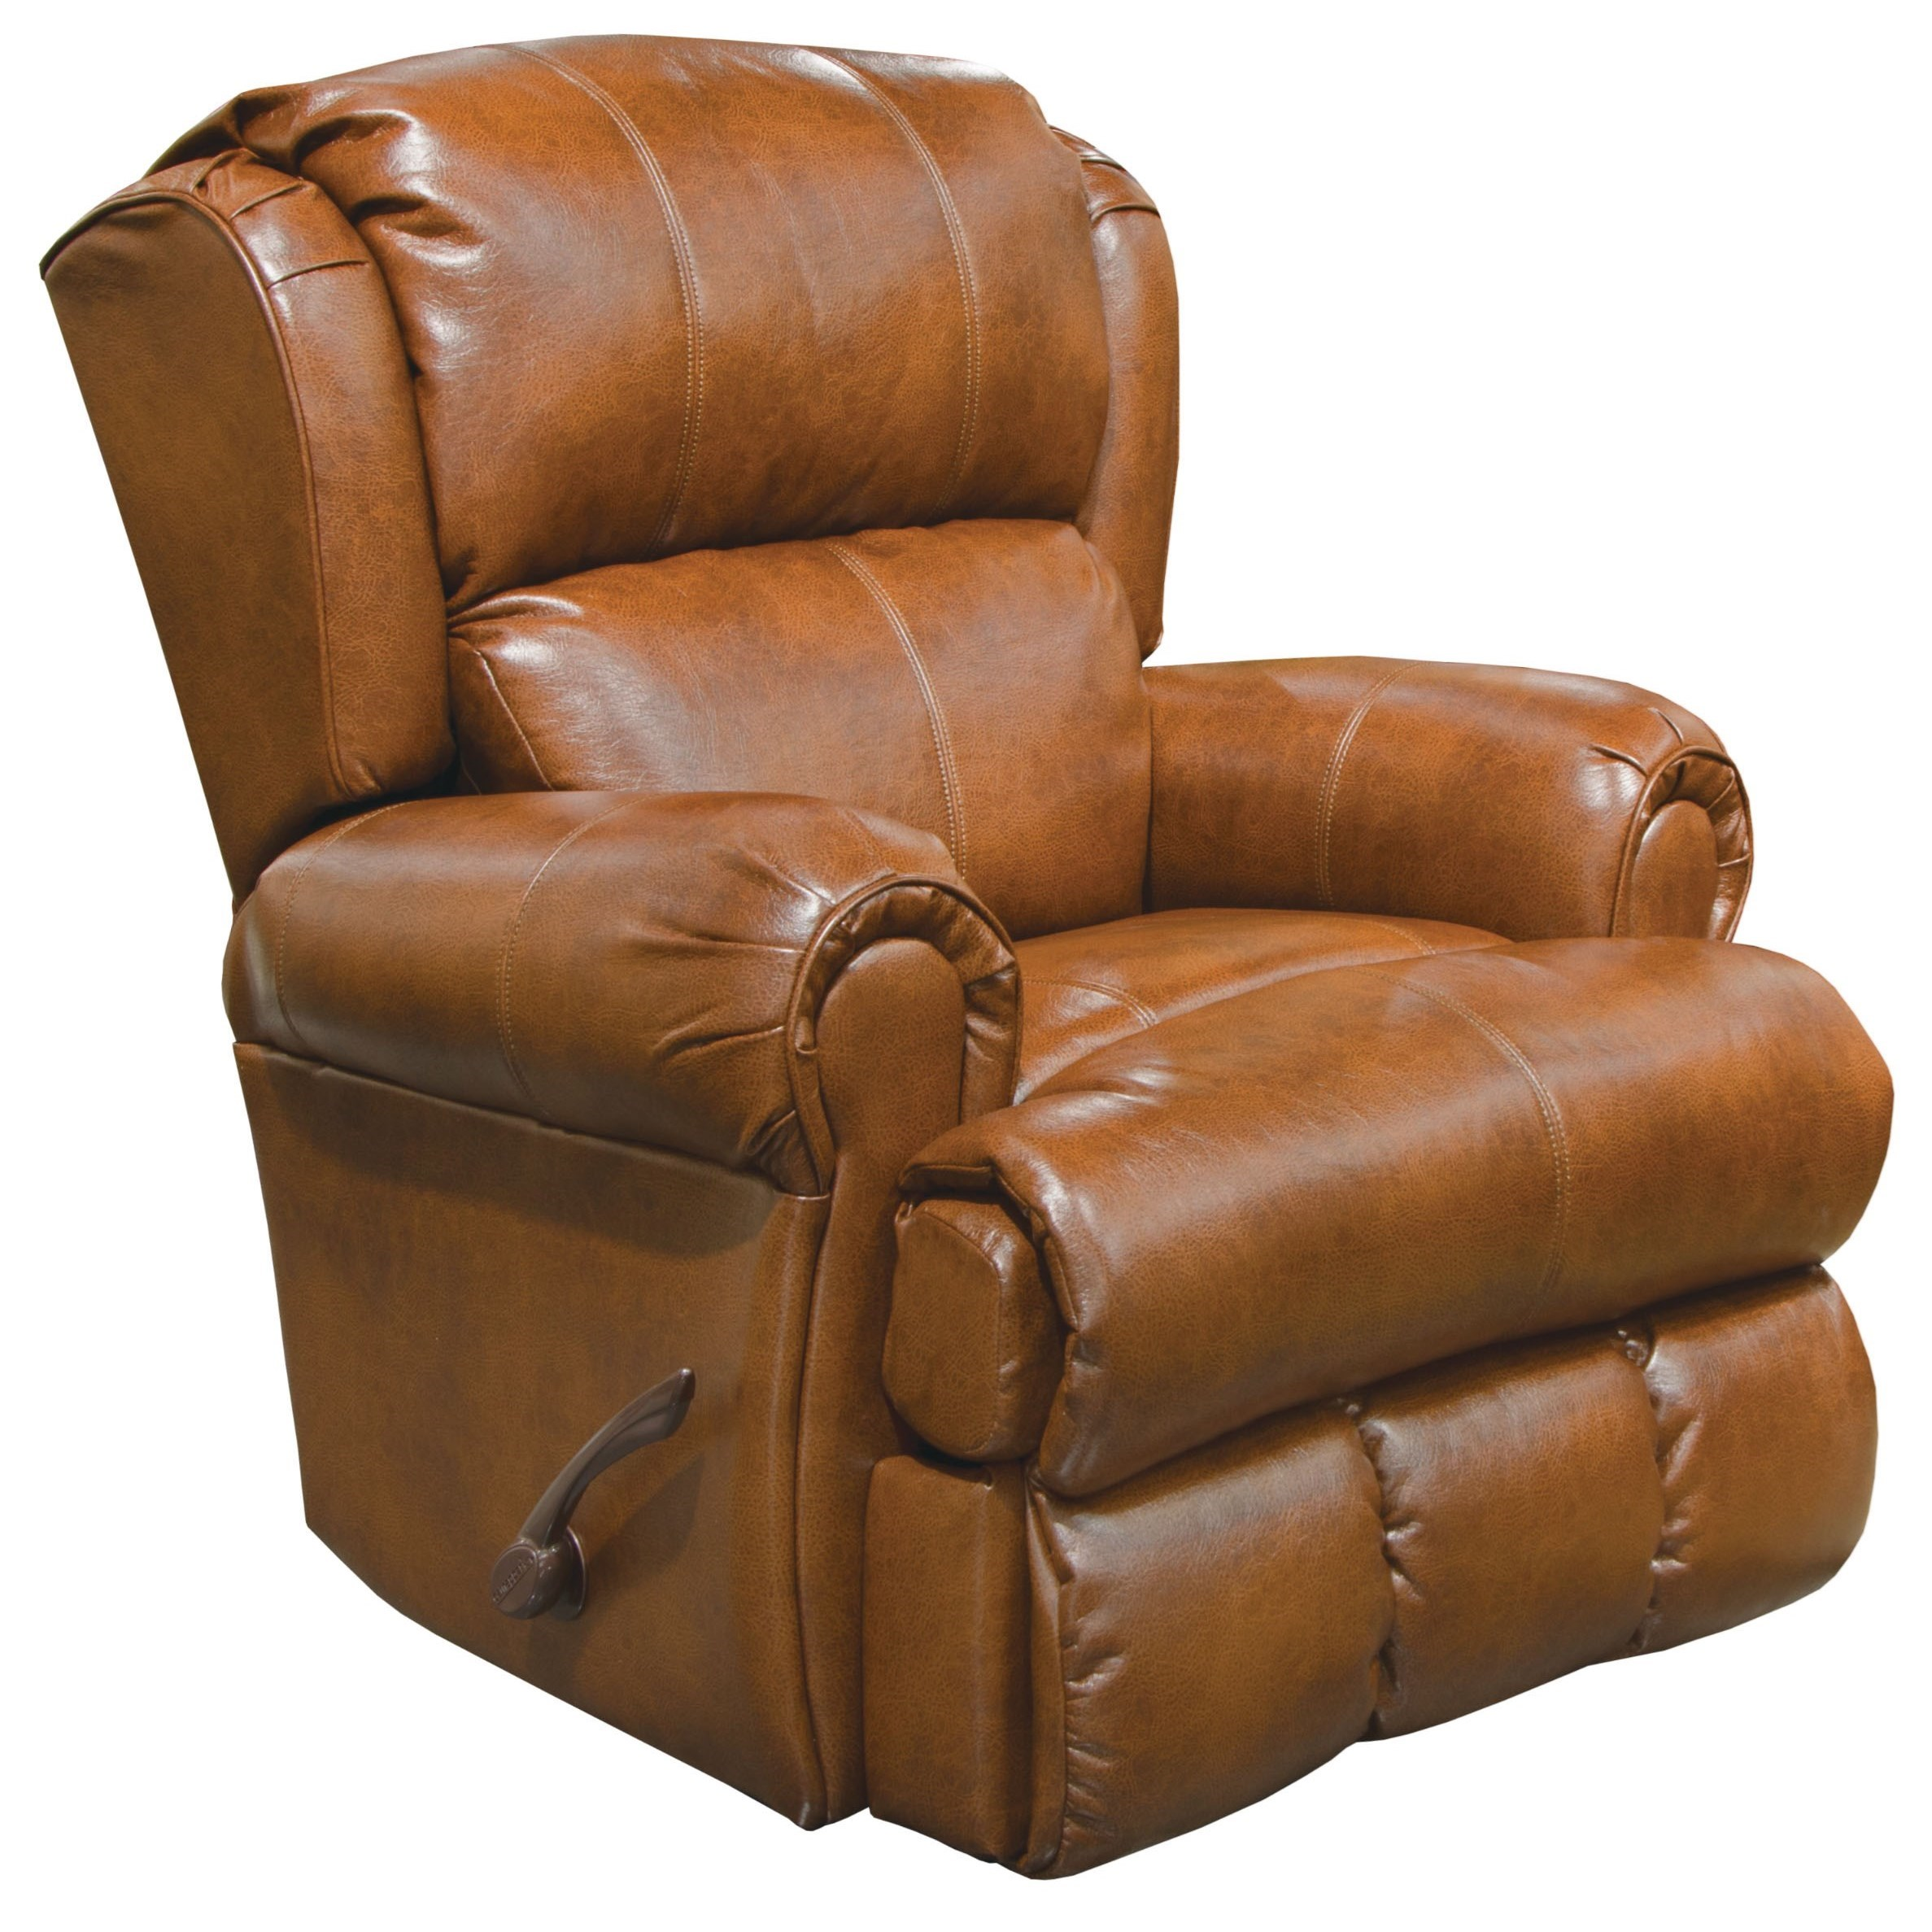 Jackson Furniture Southport Glider Recliner - Item Number: 436711-Chestnut